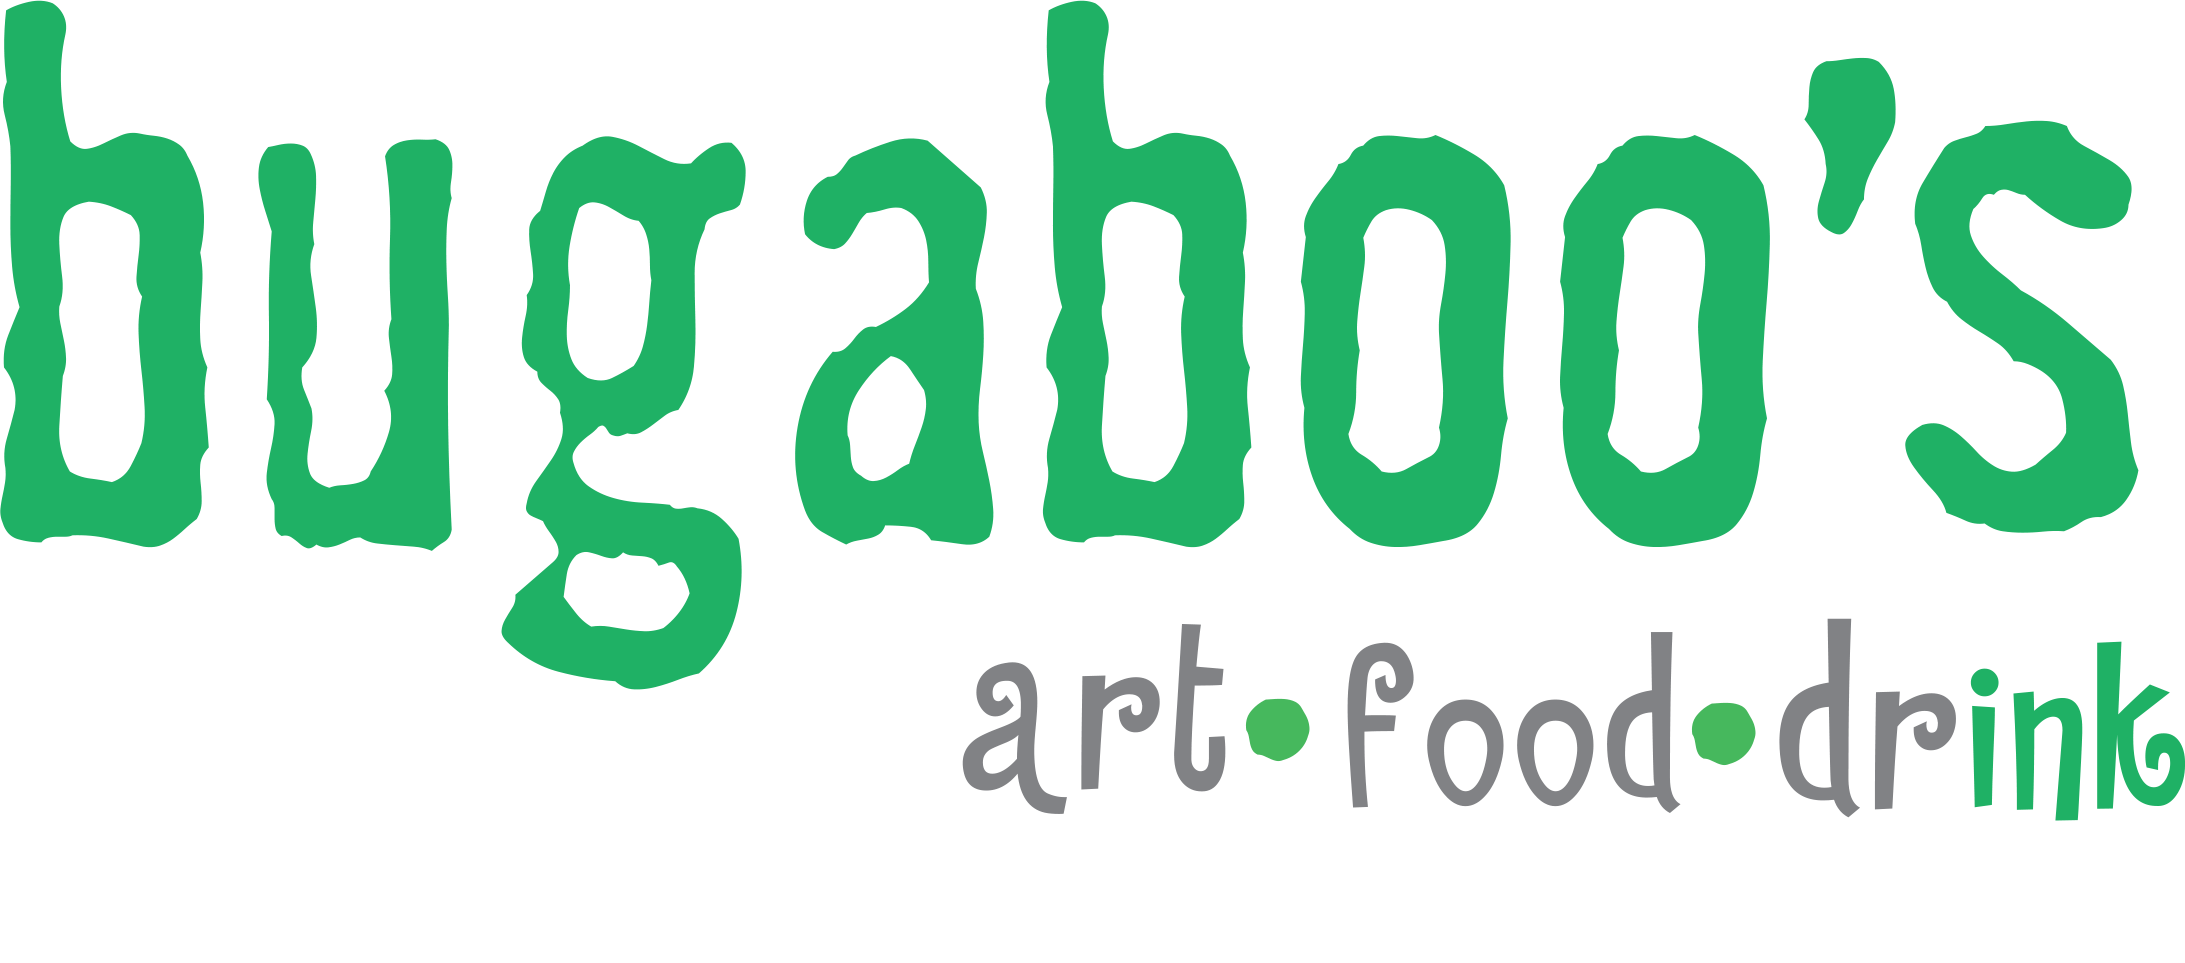 Beer Menu | Bugaboo's Bar and Grill